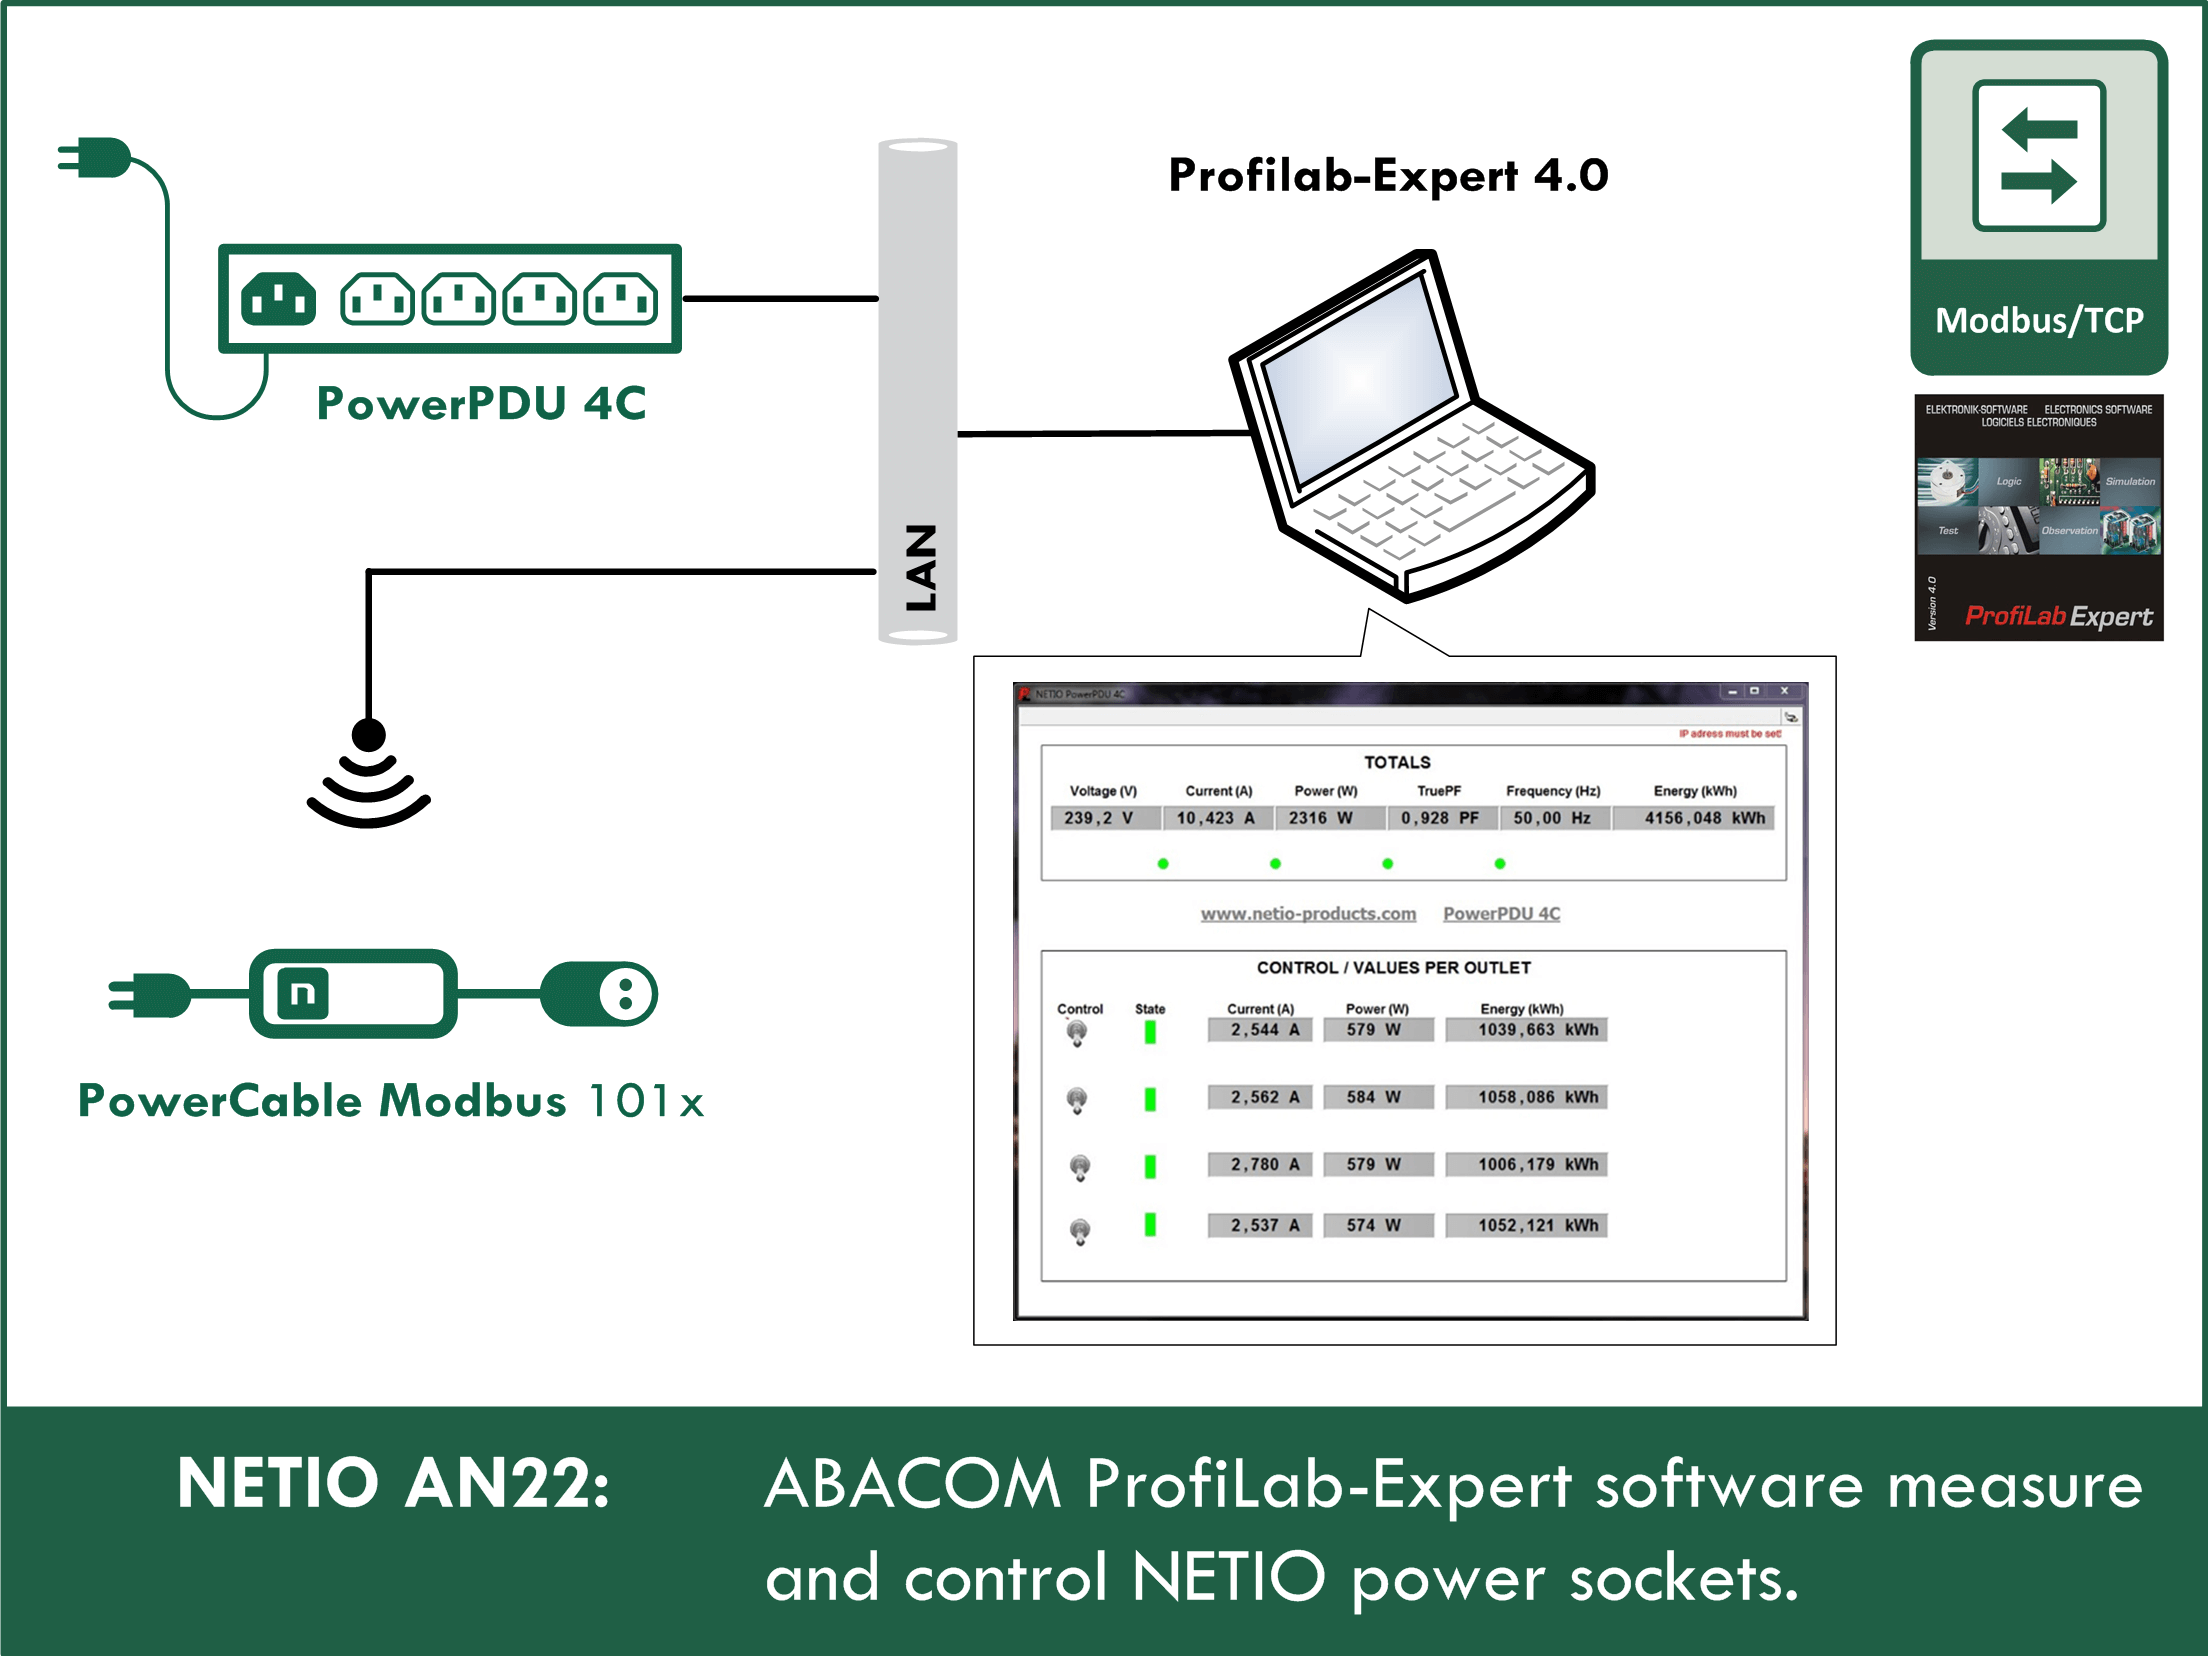 ABACOM ProfiLab-Expert software controls NETIO power sockets and reads measurements